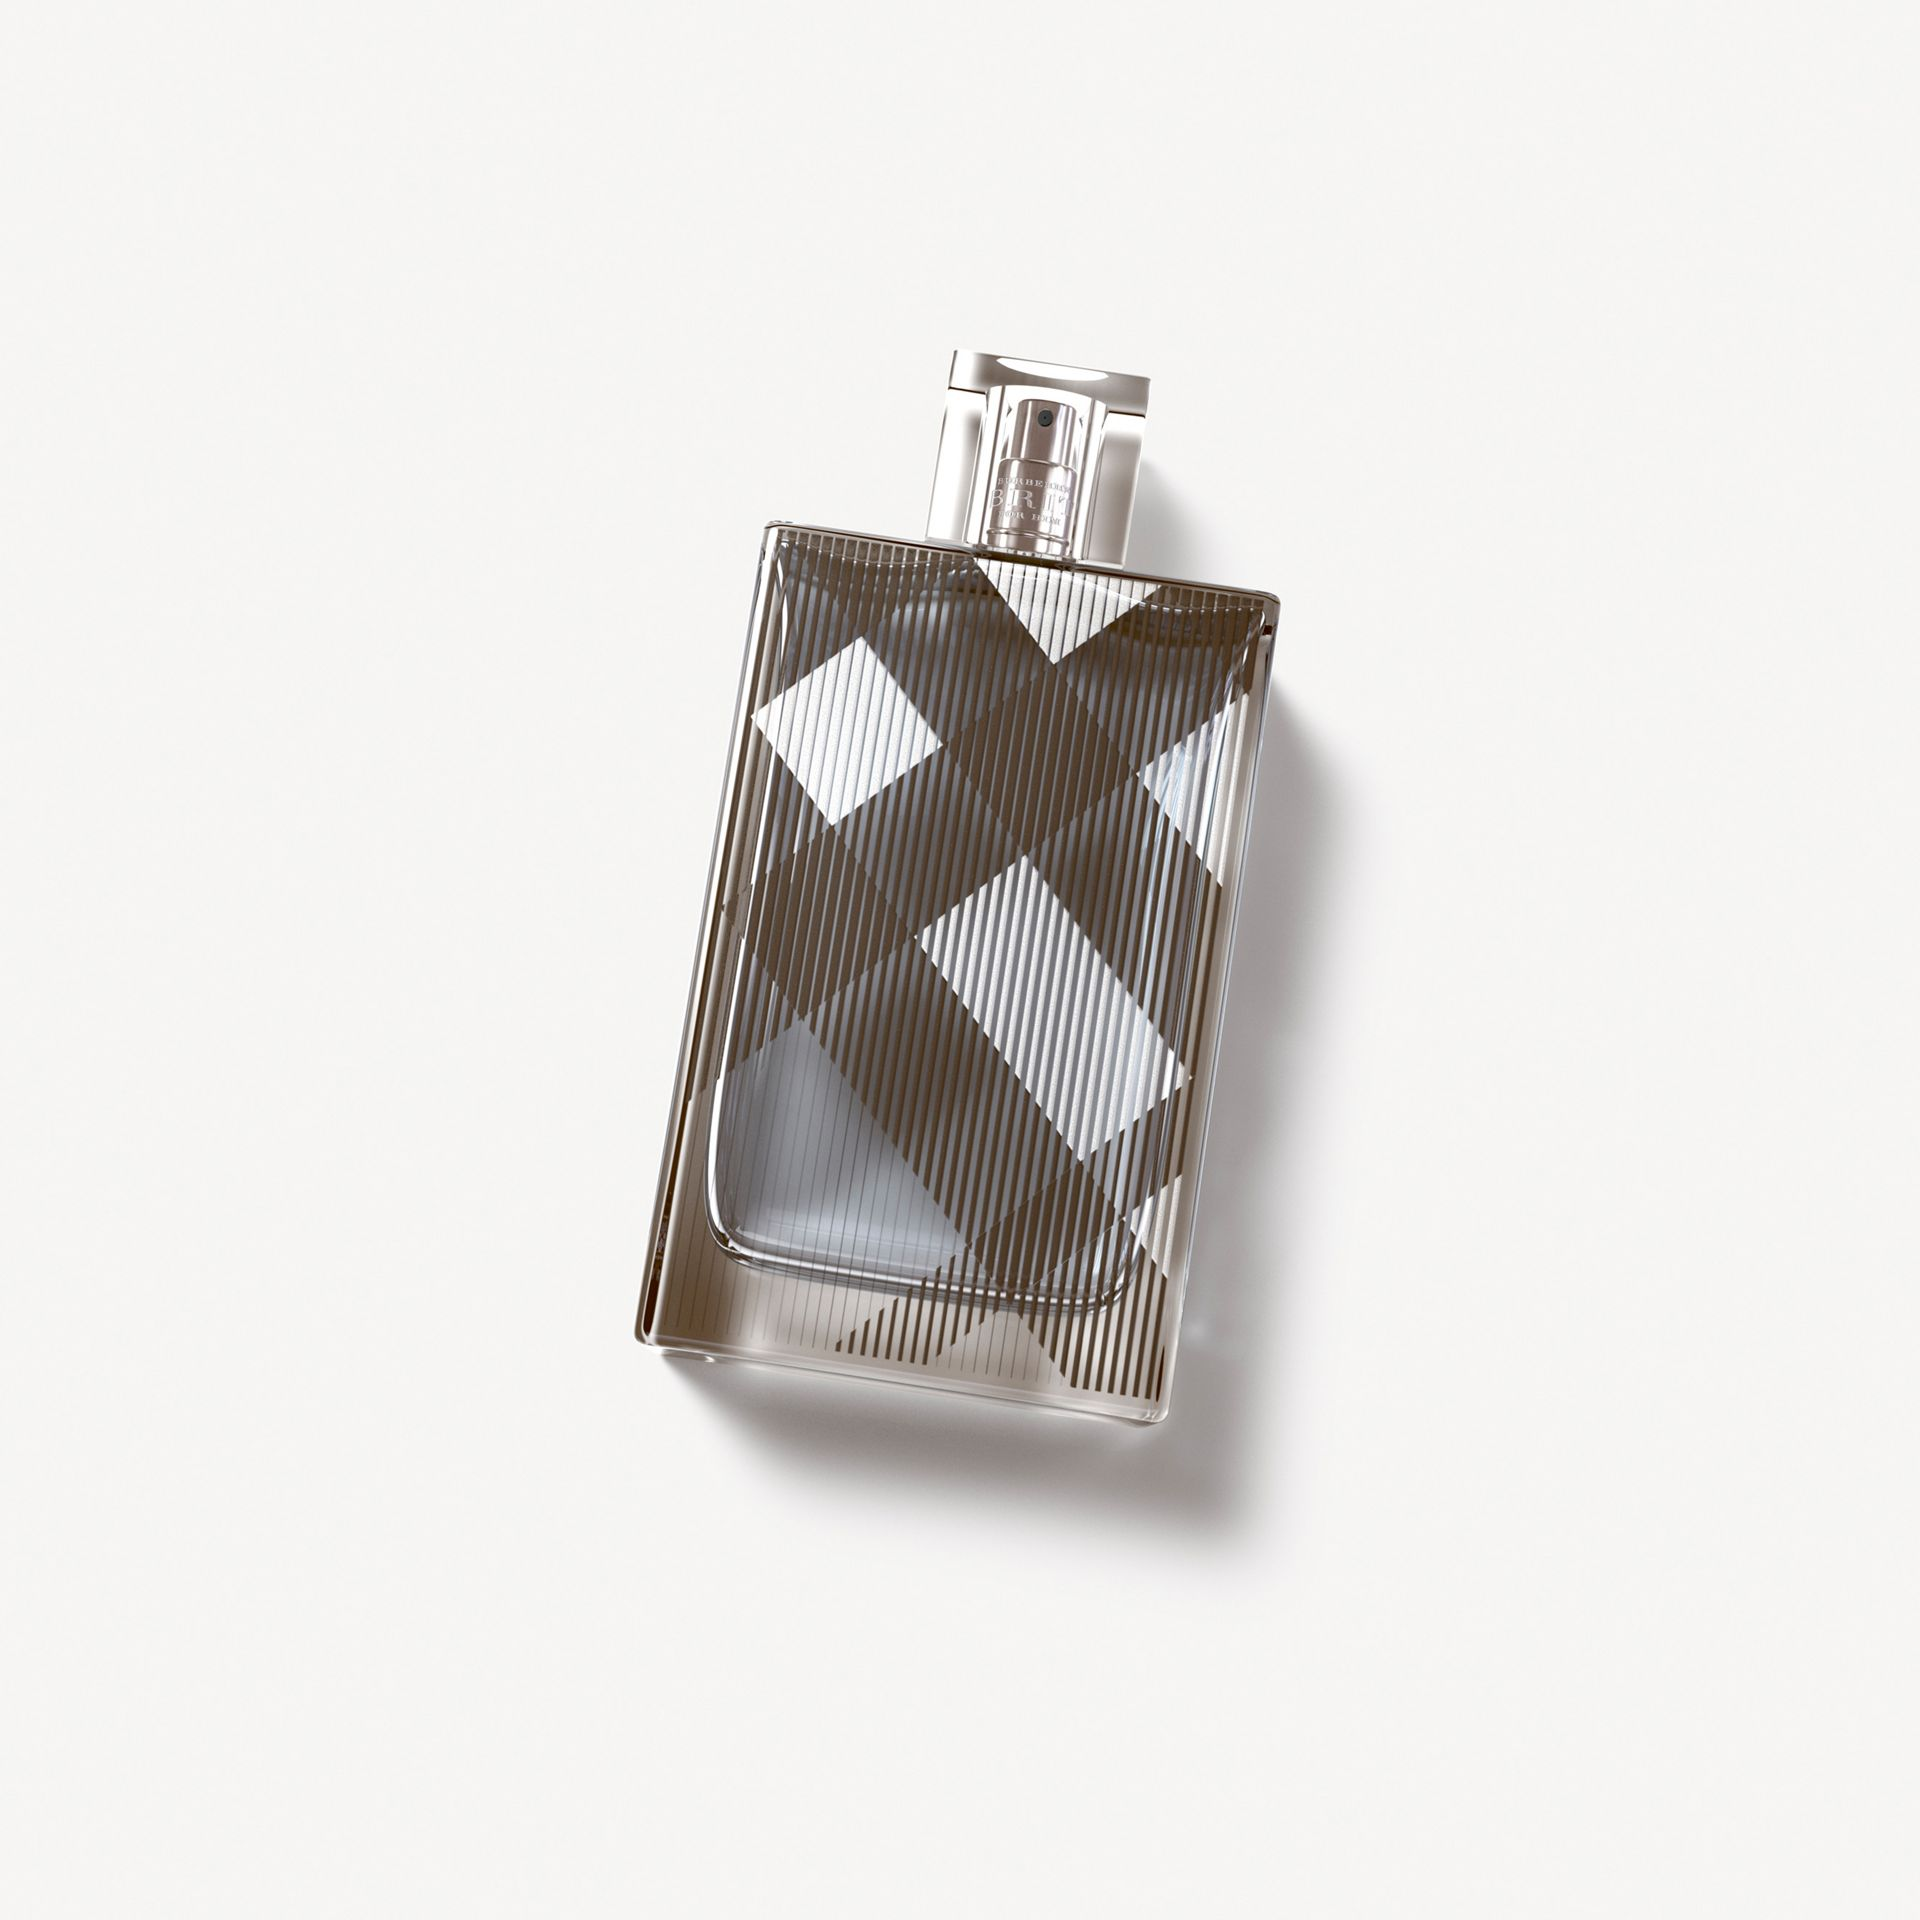 Burberry Brit For HIm Eau de Toilette 100ml - gallery image 1